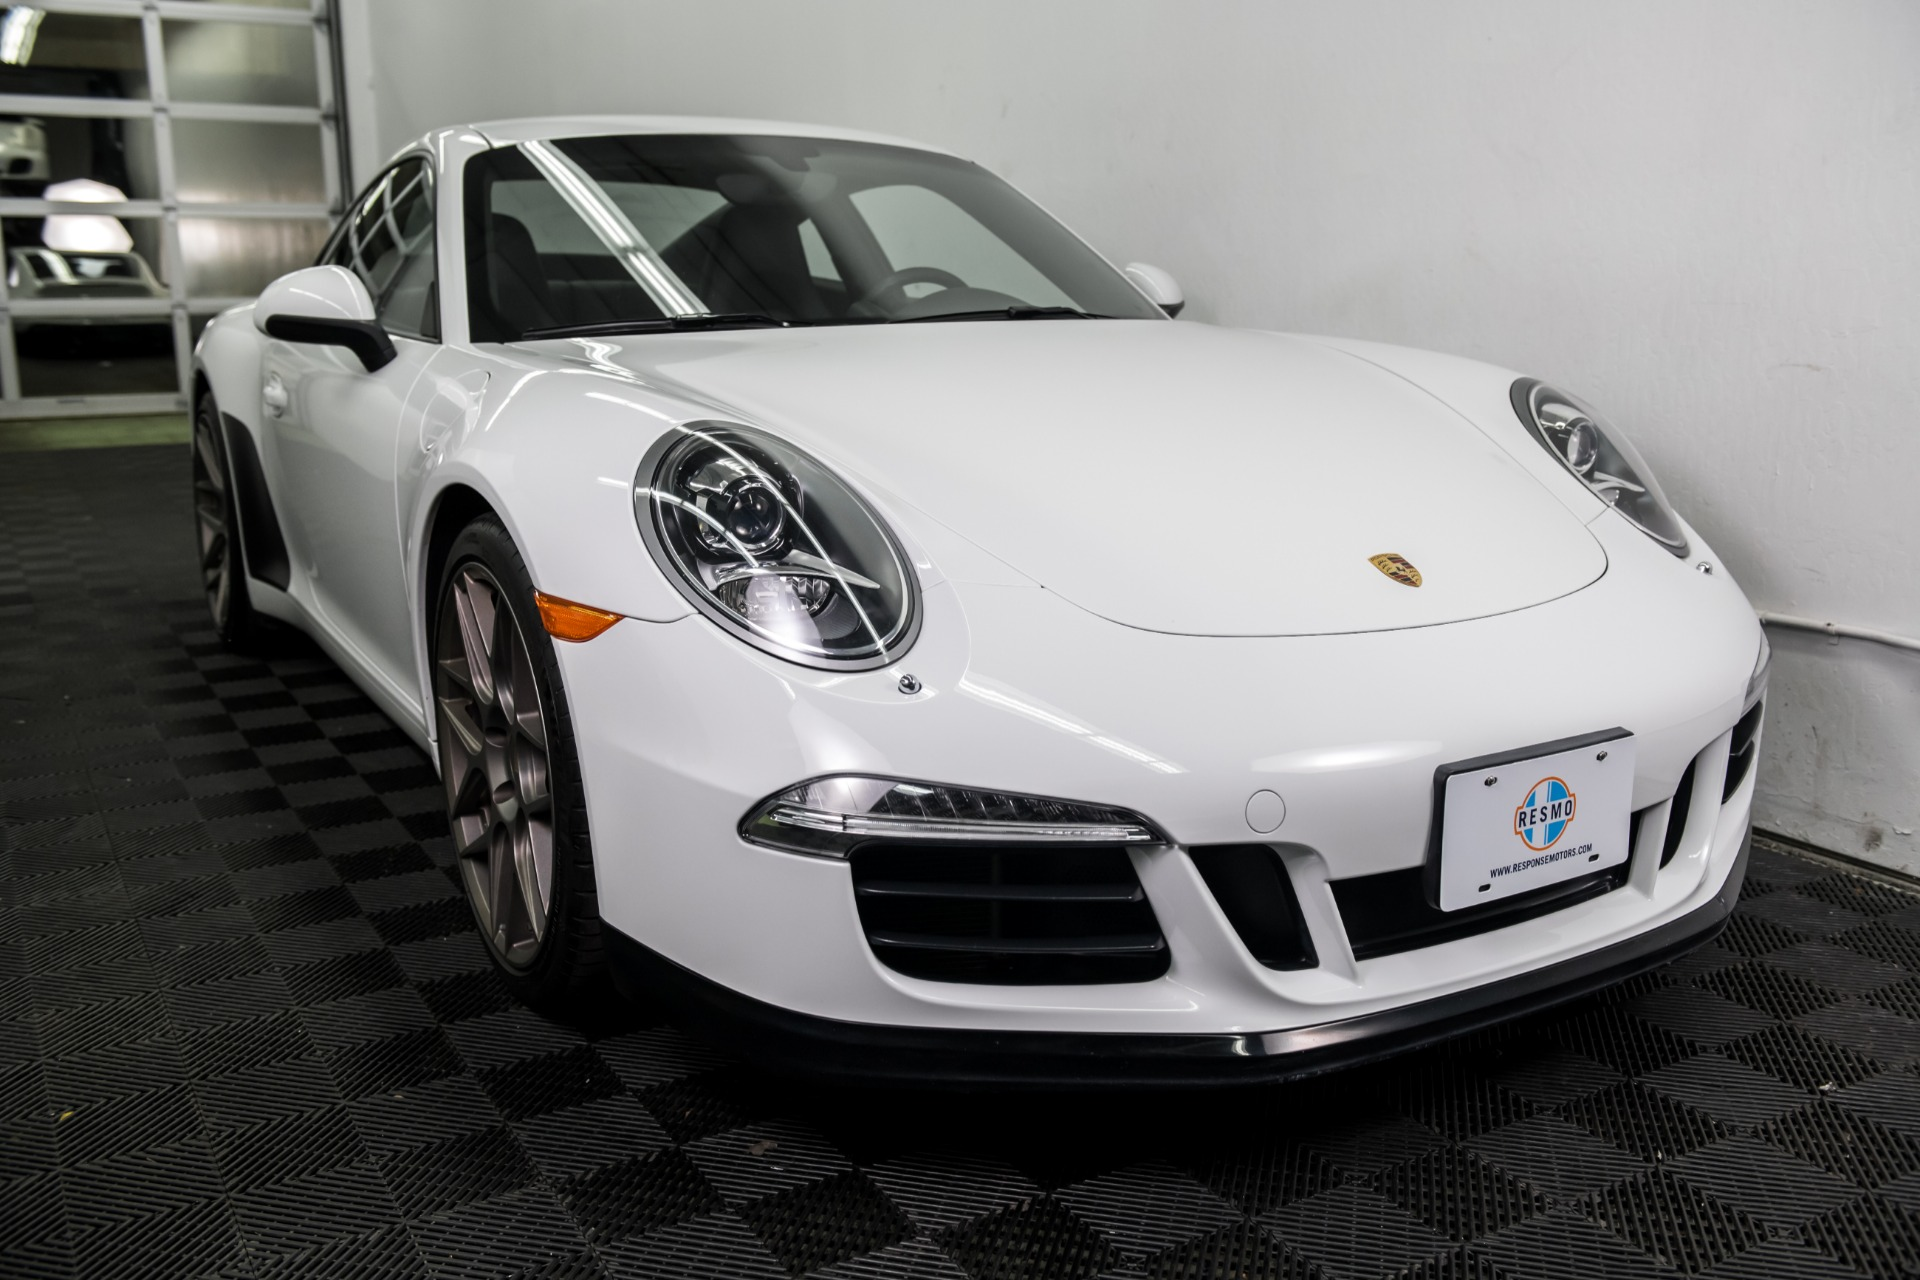 Used 2013 Porsche 911 Carrera S Used 2013 Porsche 911 Carrera S for sale Sold at Response Motors in Mountain View CA 1